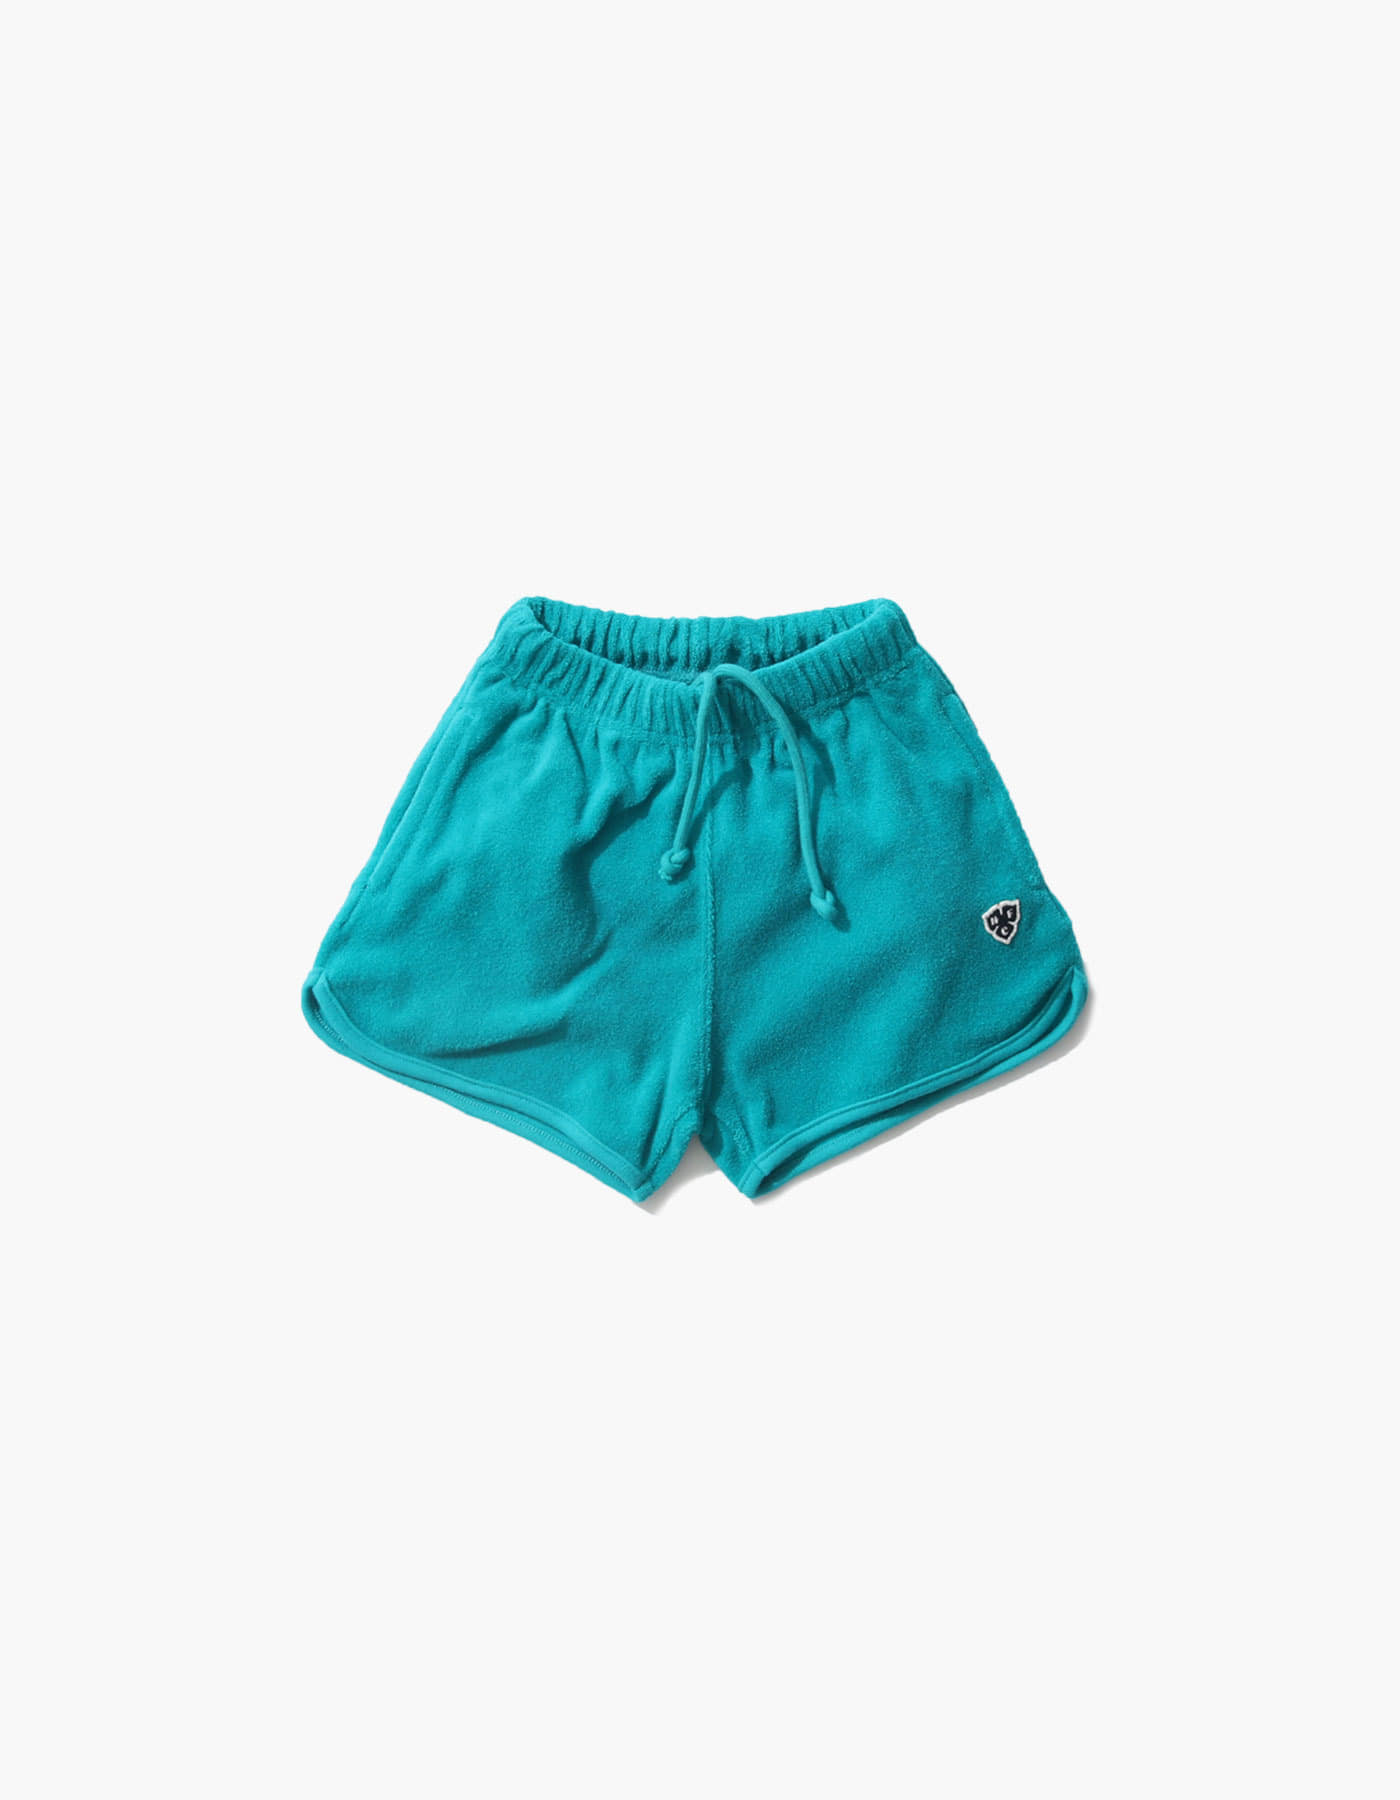 HFC CREST KIDS TOWEL SHORTS / BLUE GREEN